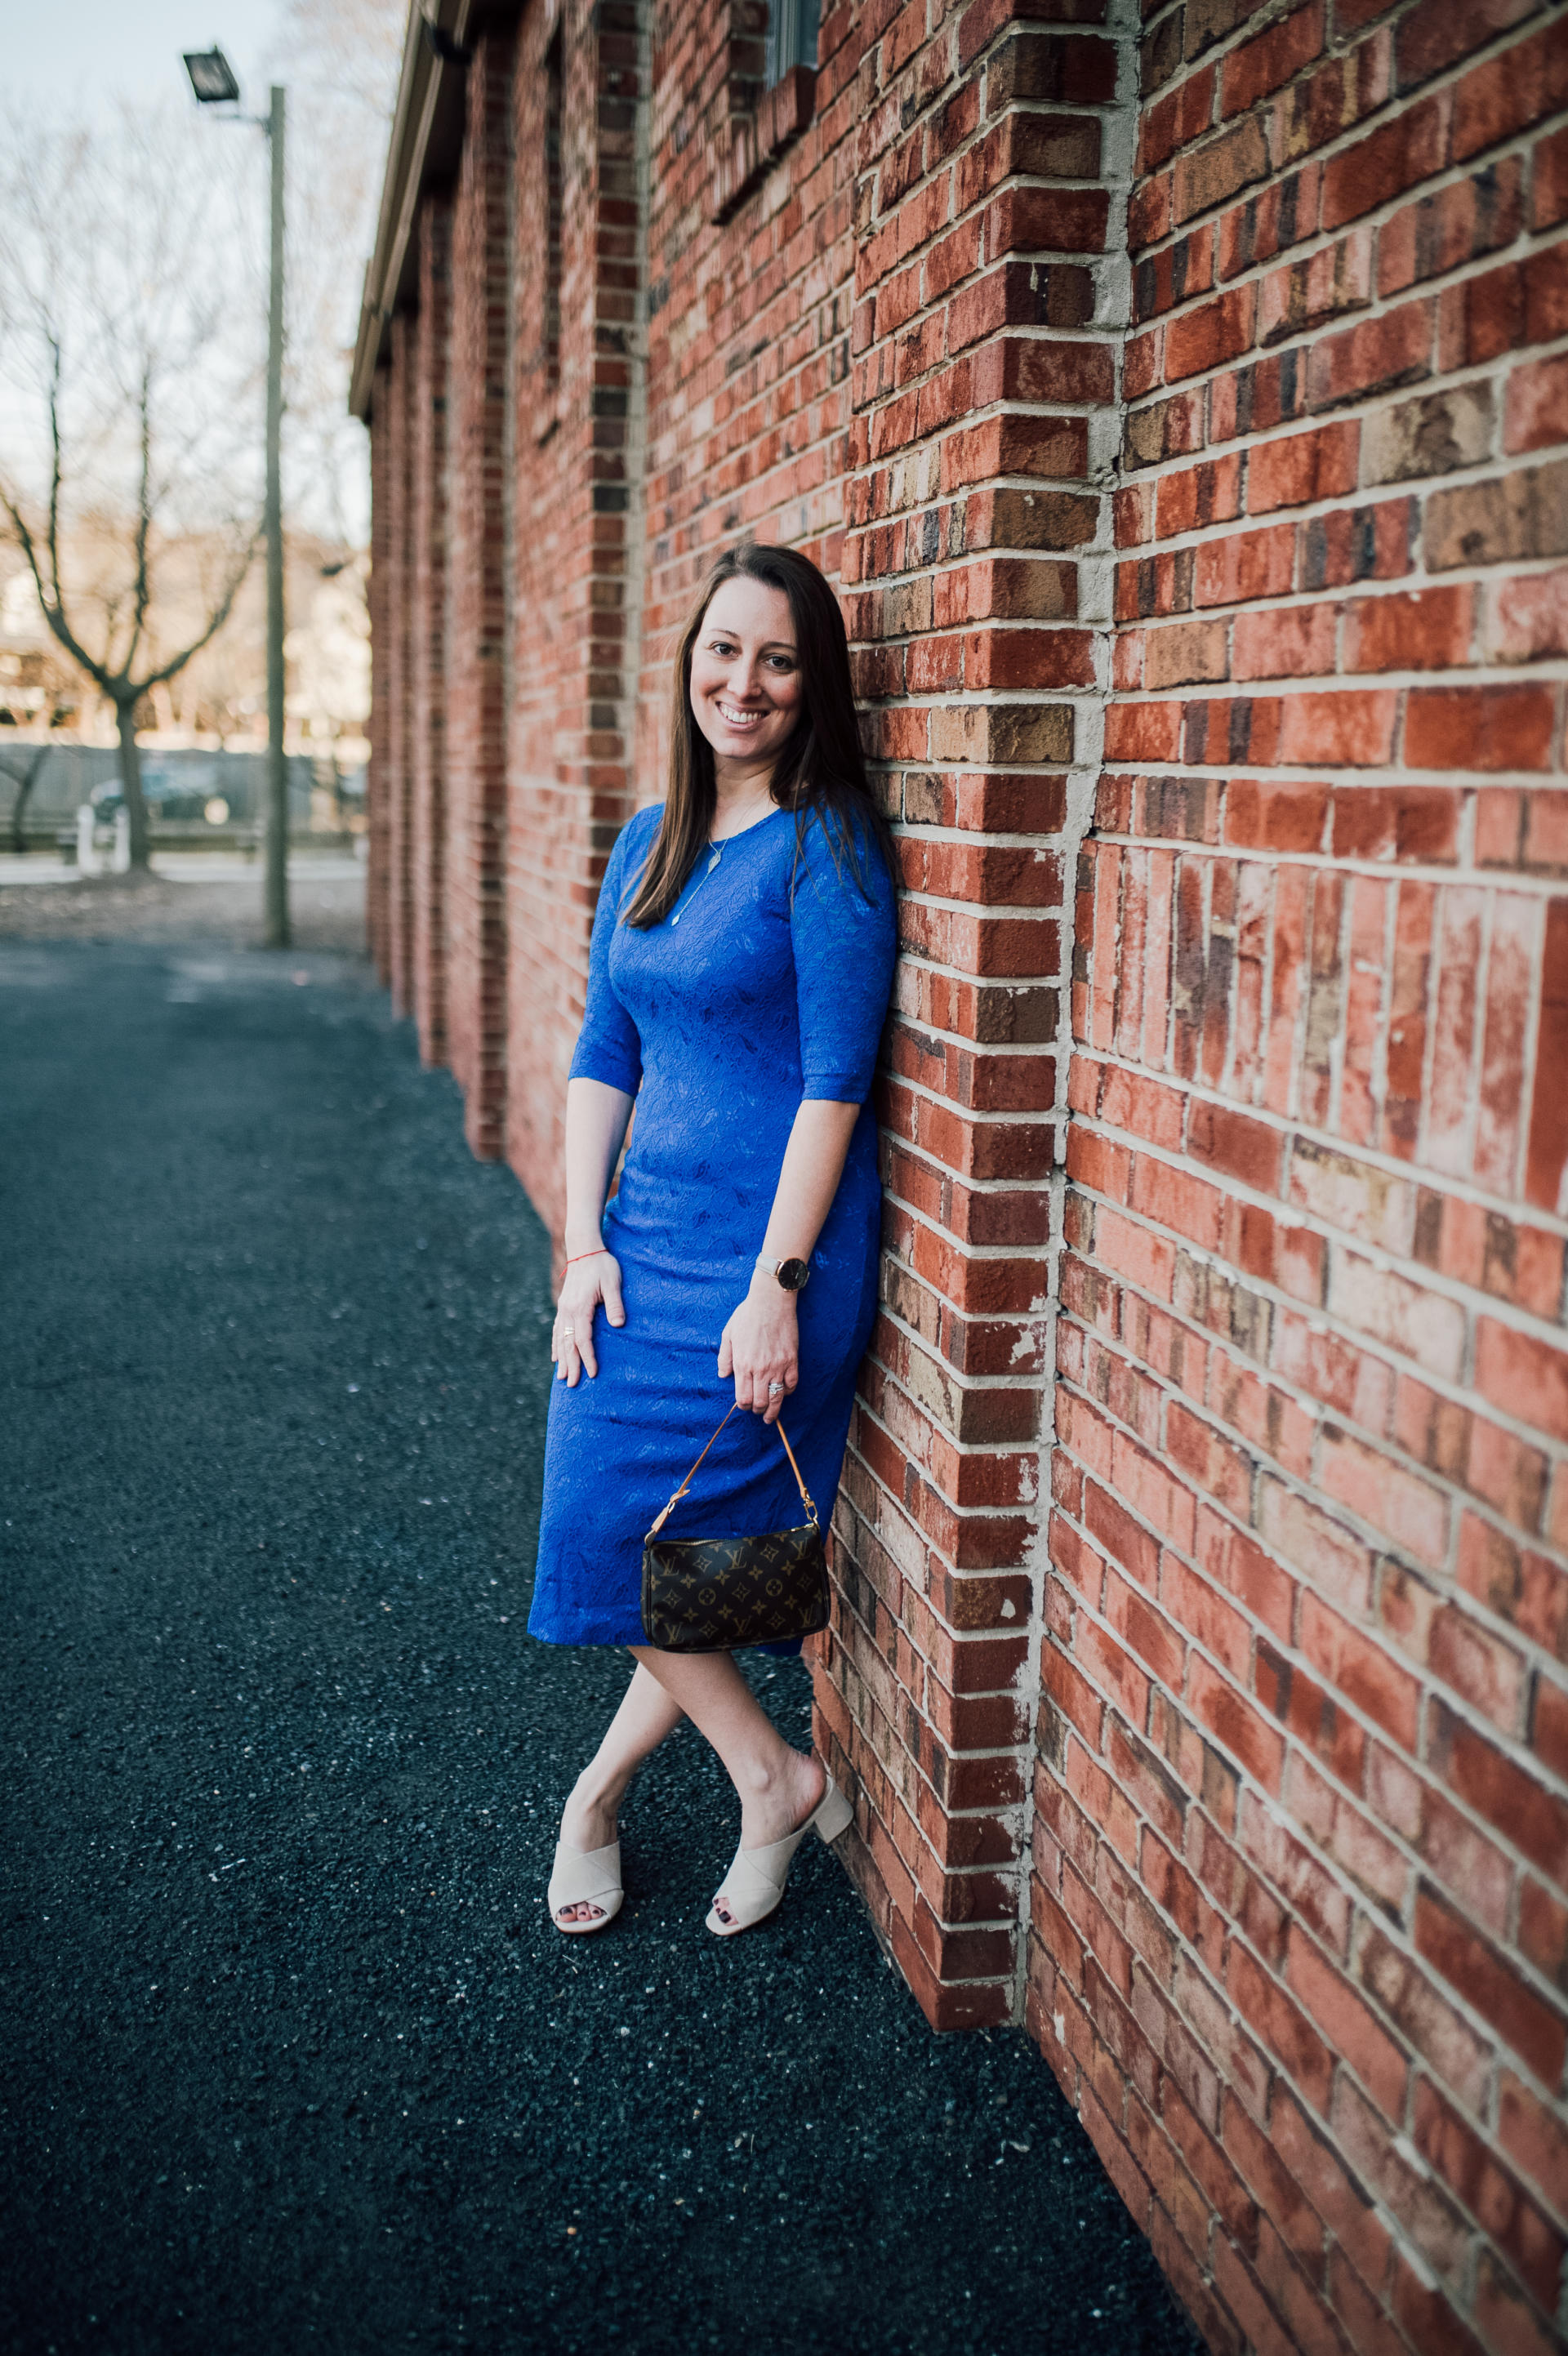 STYLE: Blue Lace Dress with Pink Blush by New Jersey fashion blogger What's For Dinner Esq.